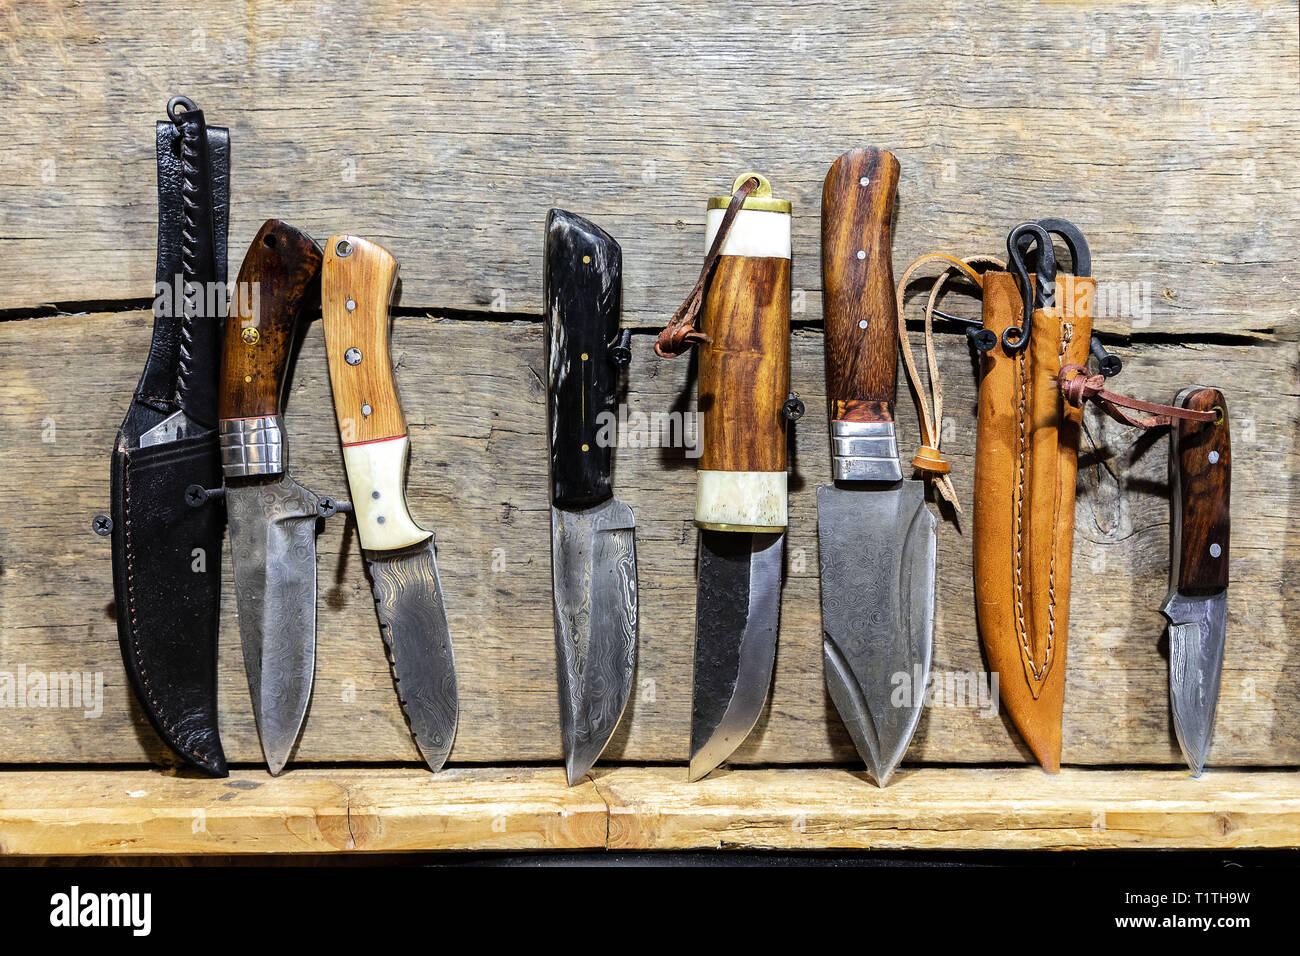 hand made knifes on the wooden table. - Stock Image